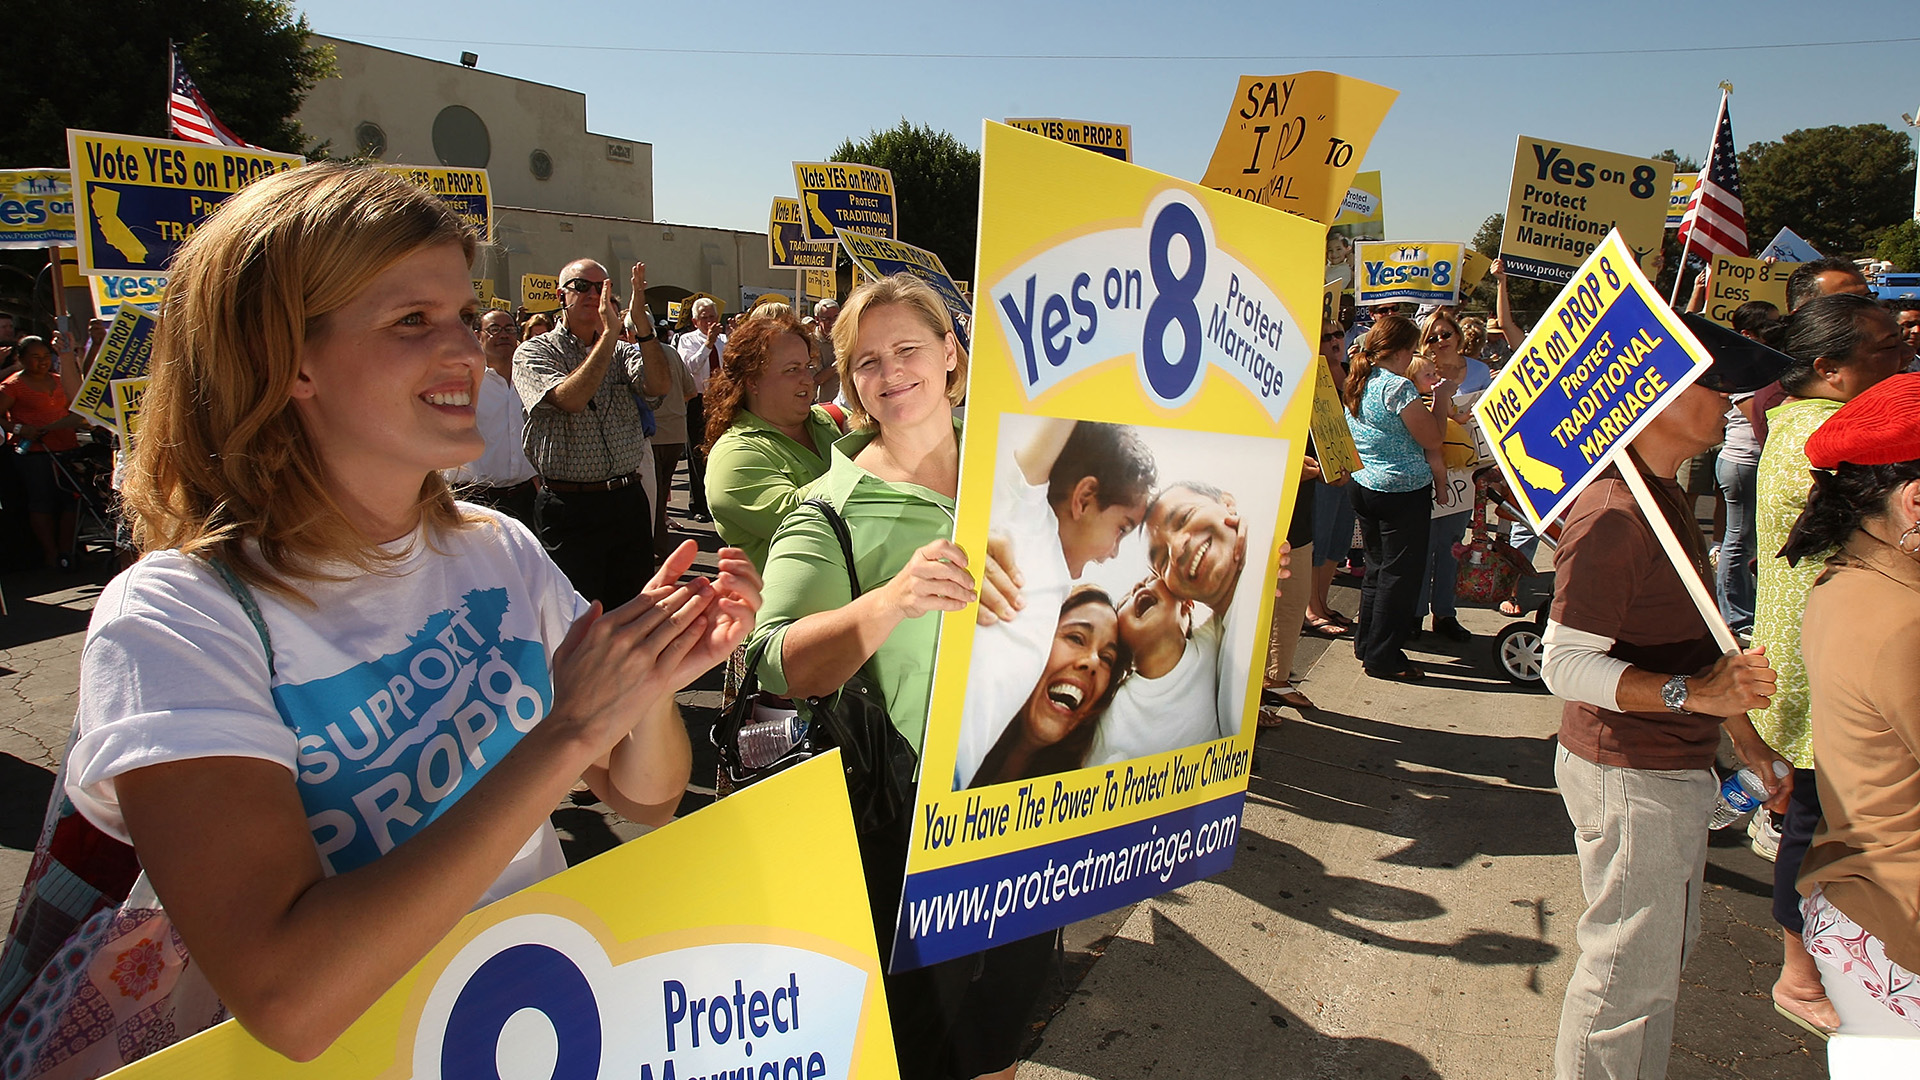 Supporters of Proposition 8 rally on October 24, 2008 in Los Angeles.